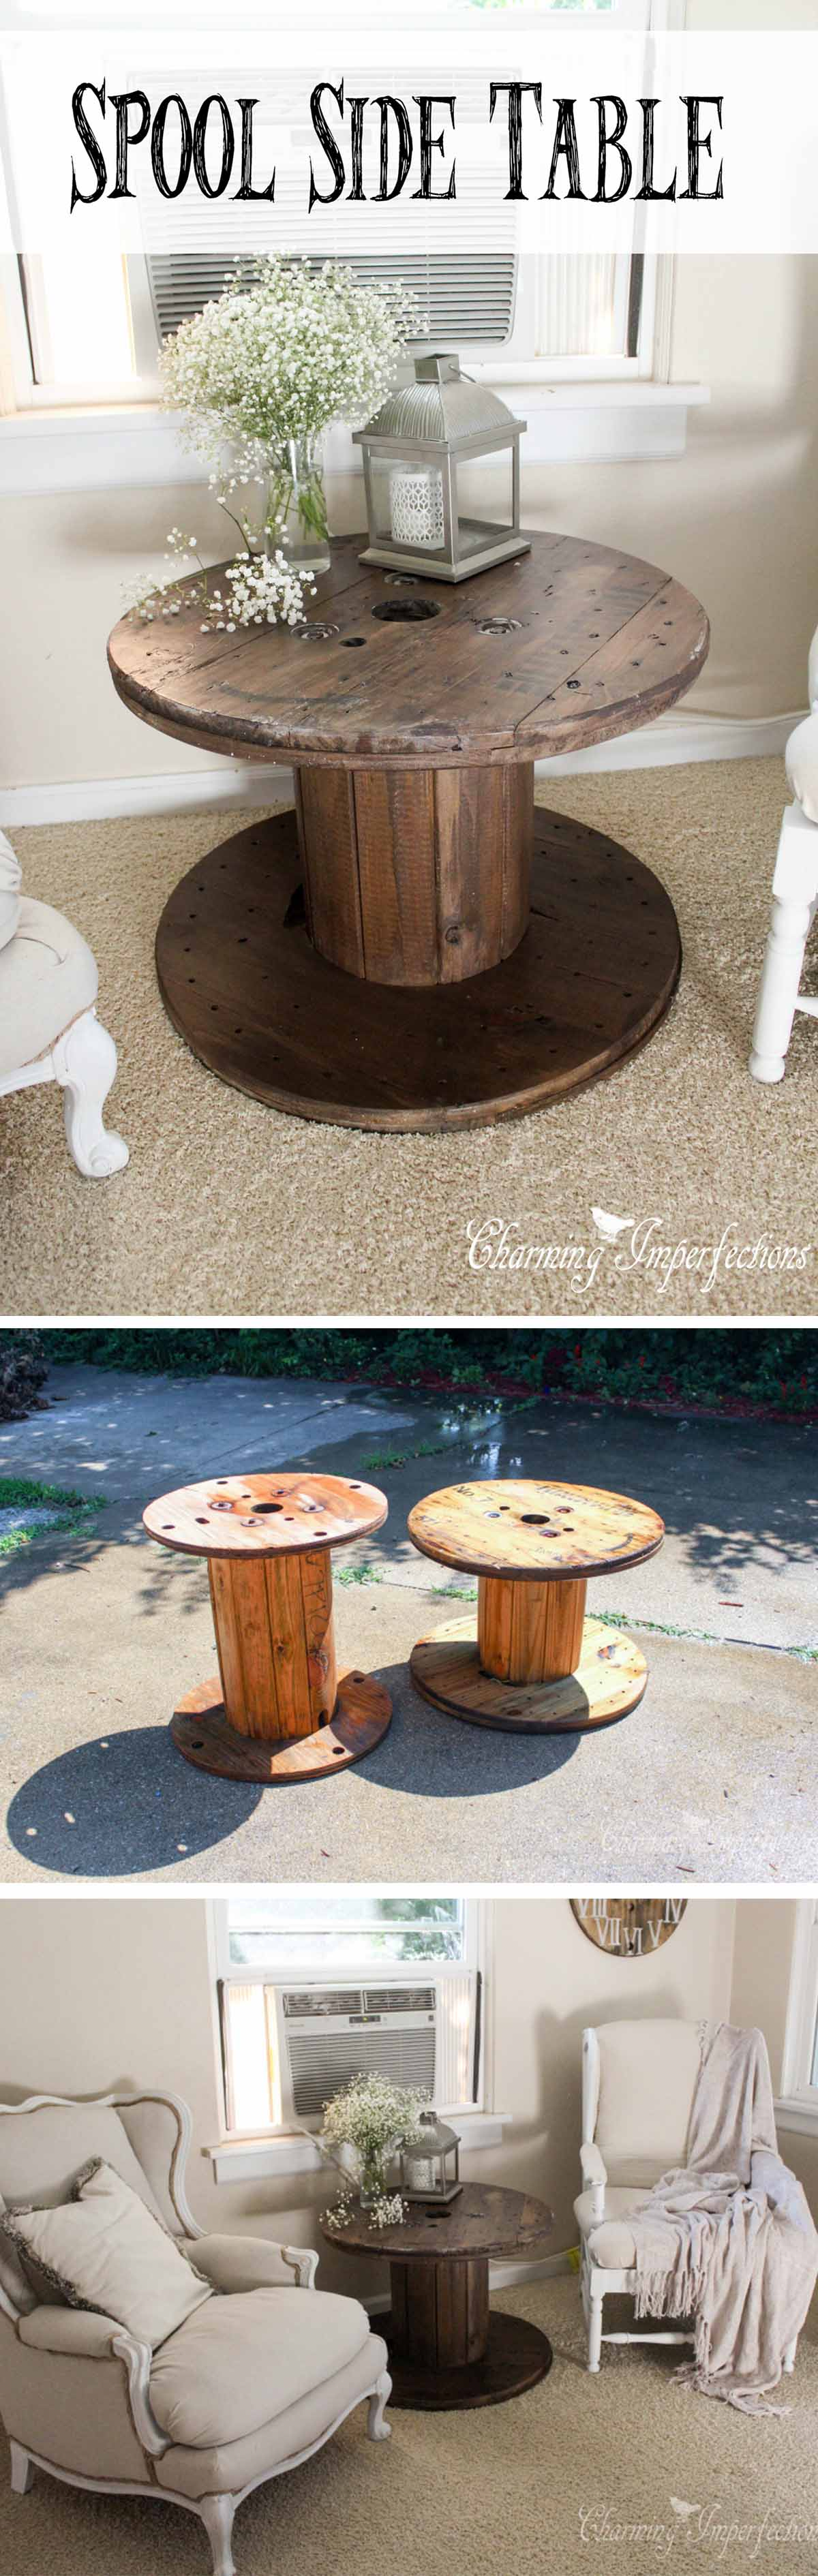 best diy farmhouse coffee table ideas and designs for homebnc accent decor easy industrial wooden spool antique end tables white marble gold italian round glass top black cherry